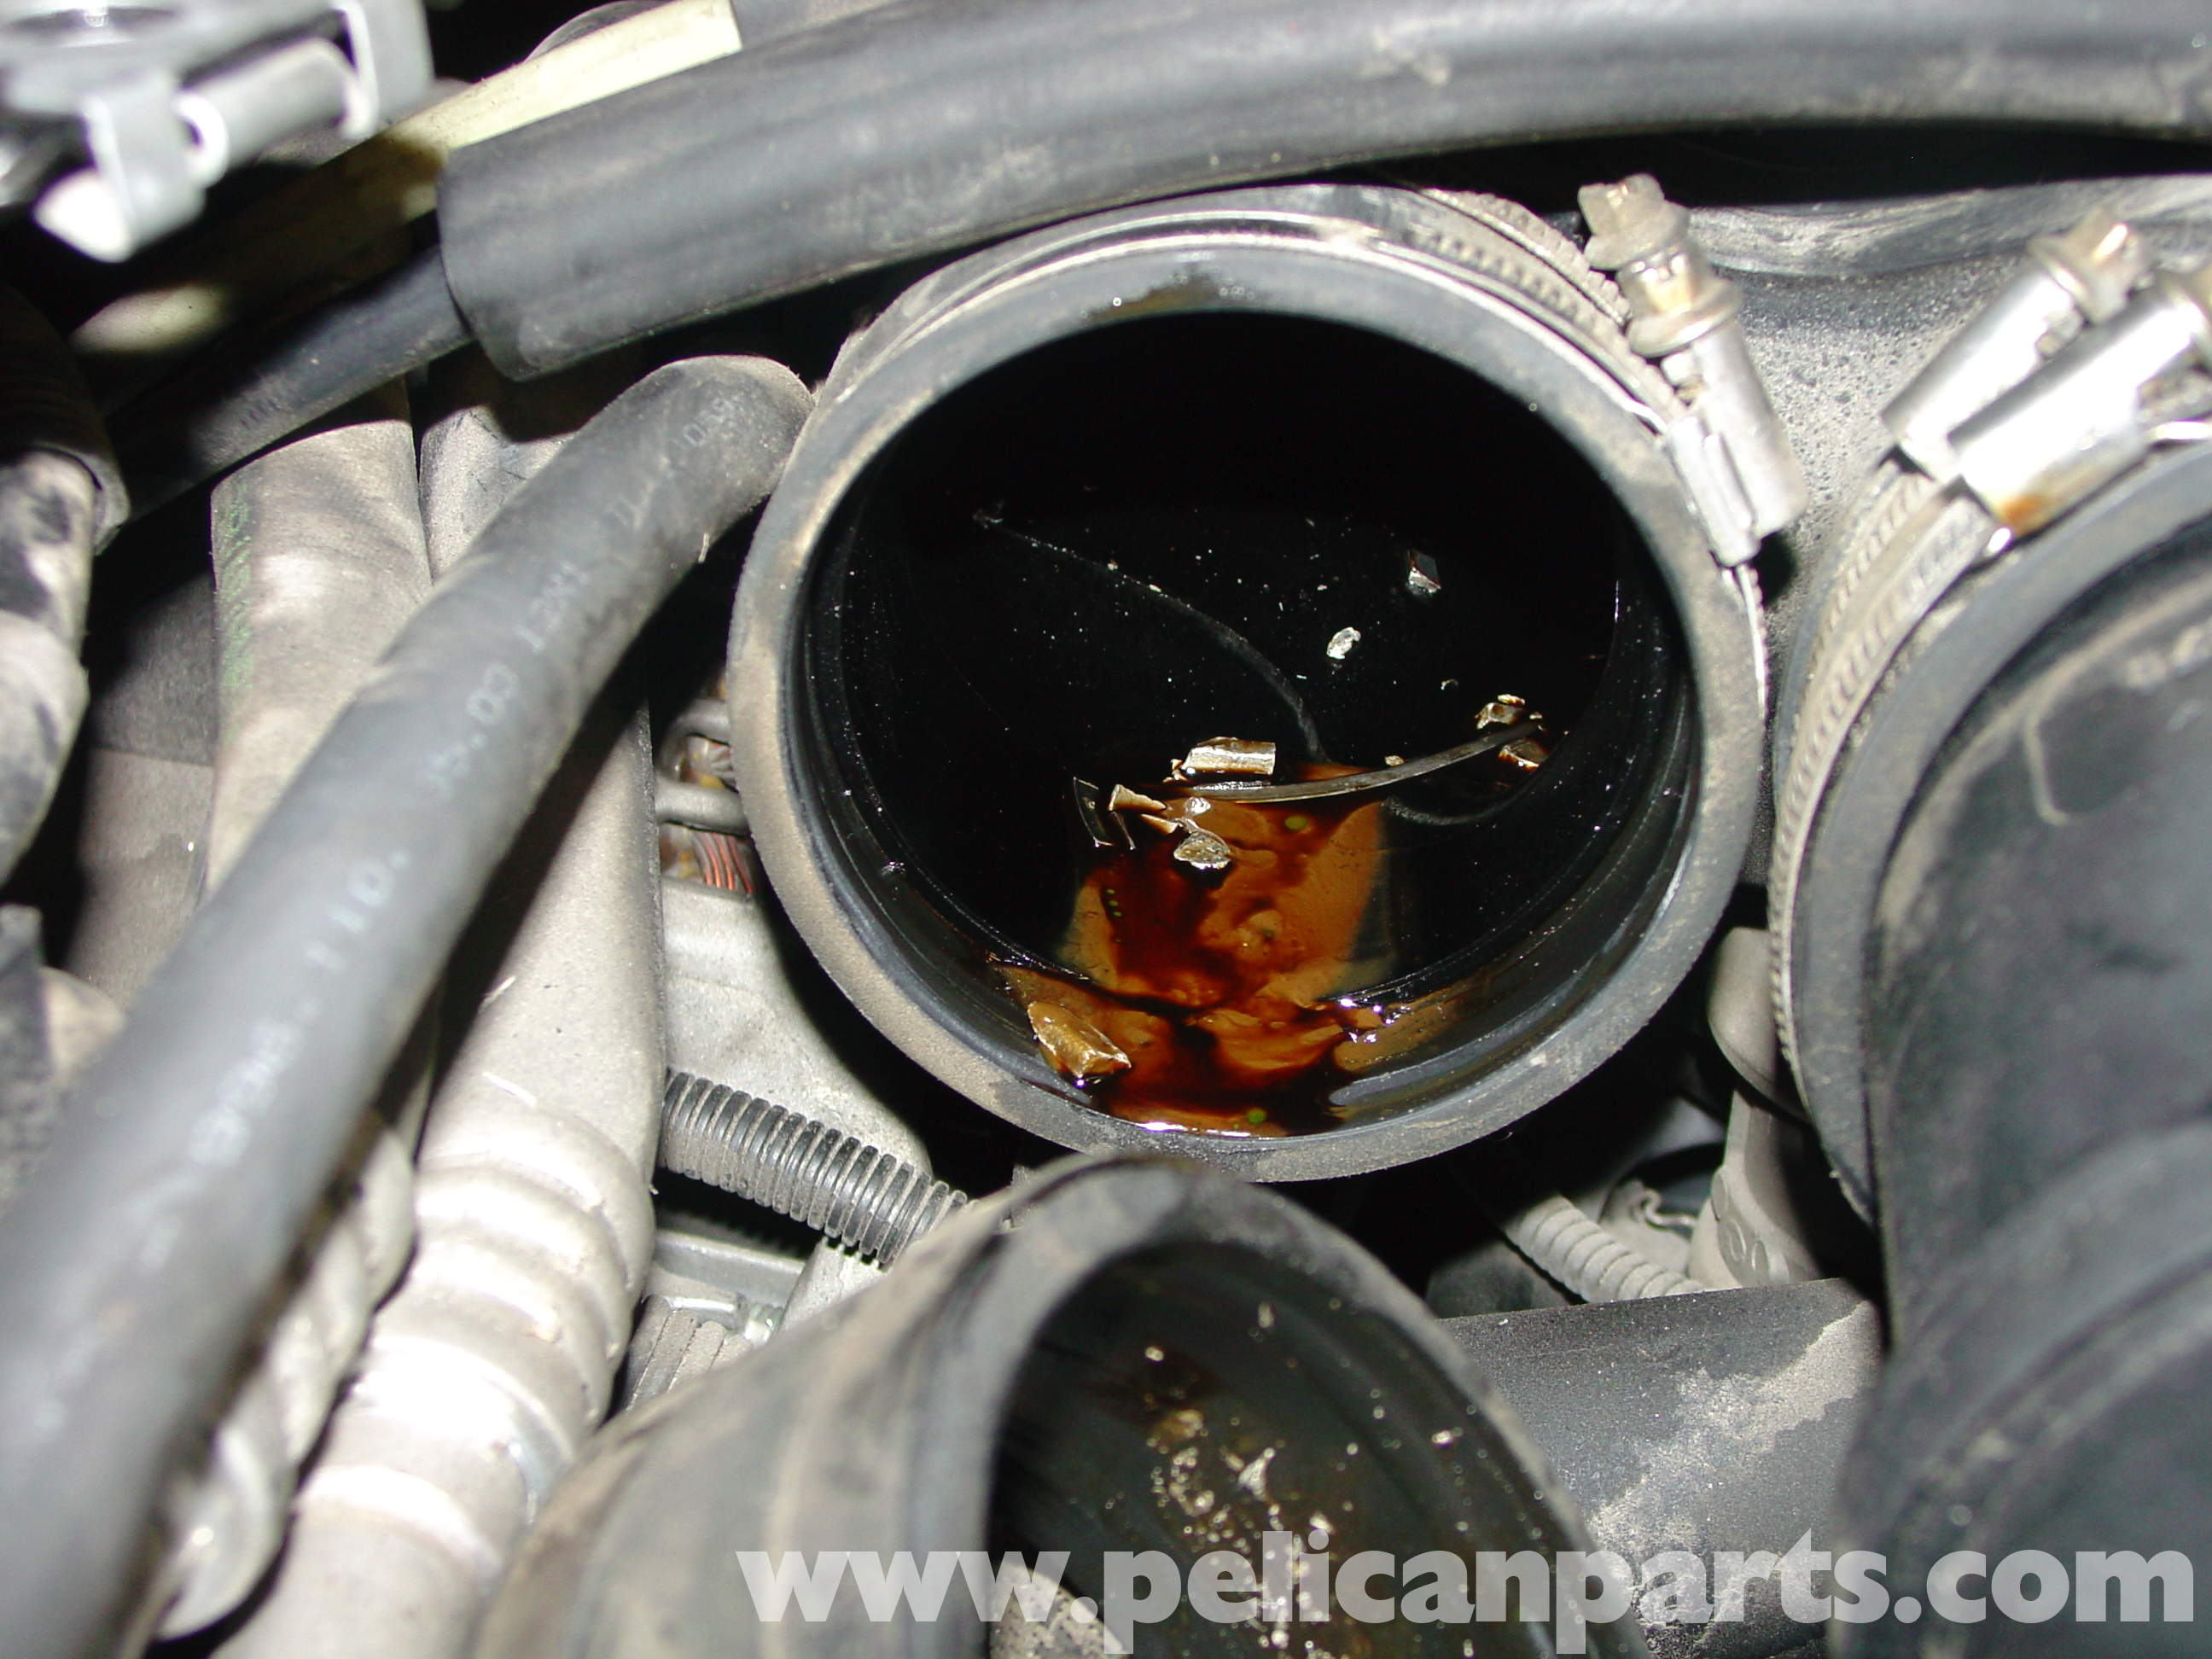 Porsche Boxster Throttle Body Replacement Cleaning